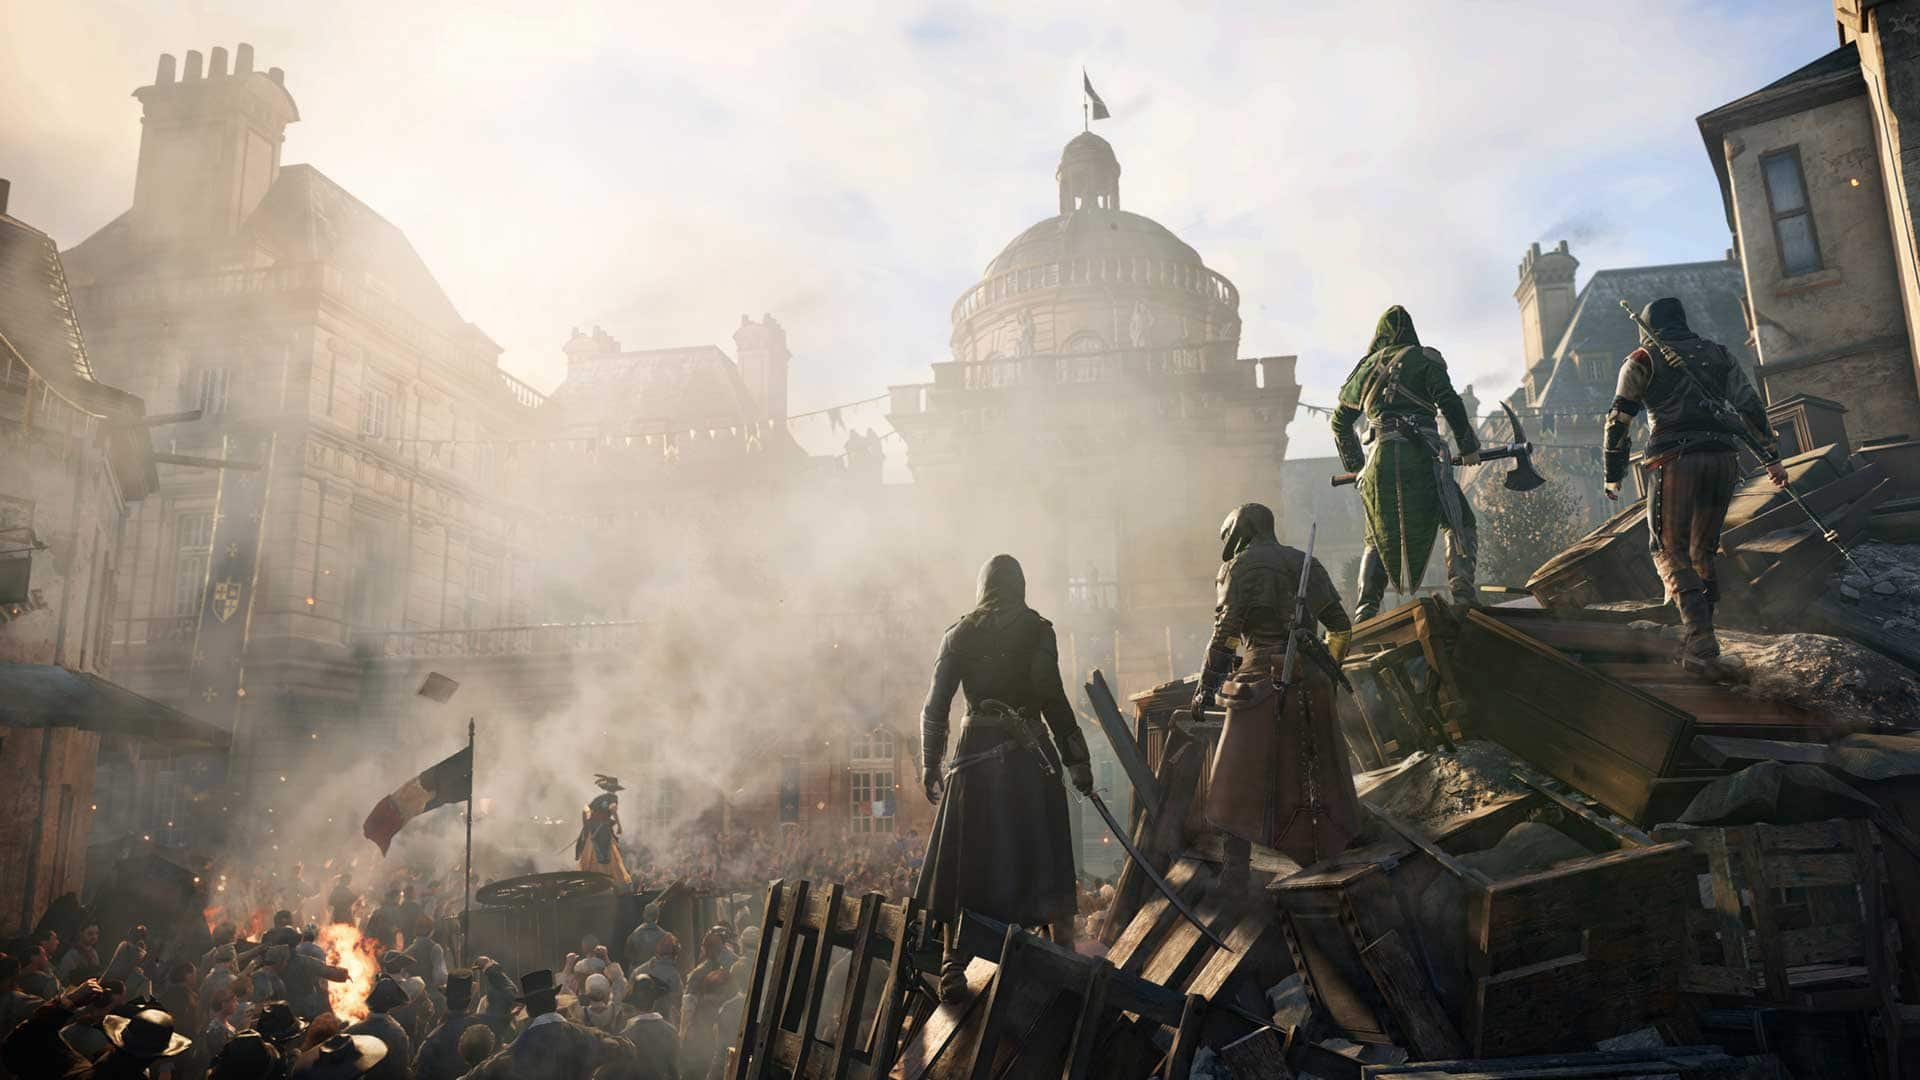 Ubisoft Had To Increase Their Server Capacity For Assassin's Creed Unity After Players Poured In Following The Giveaway